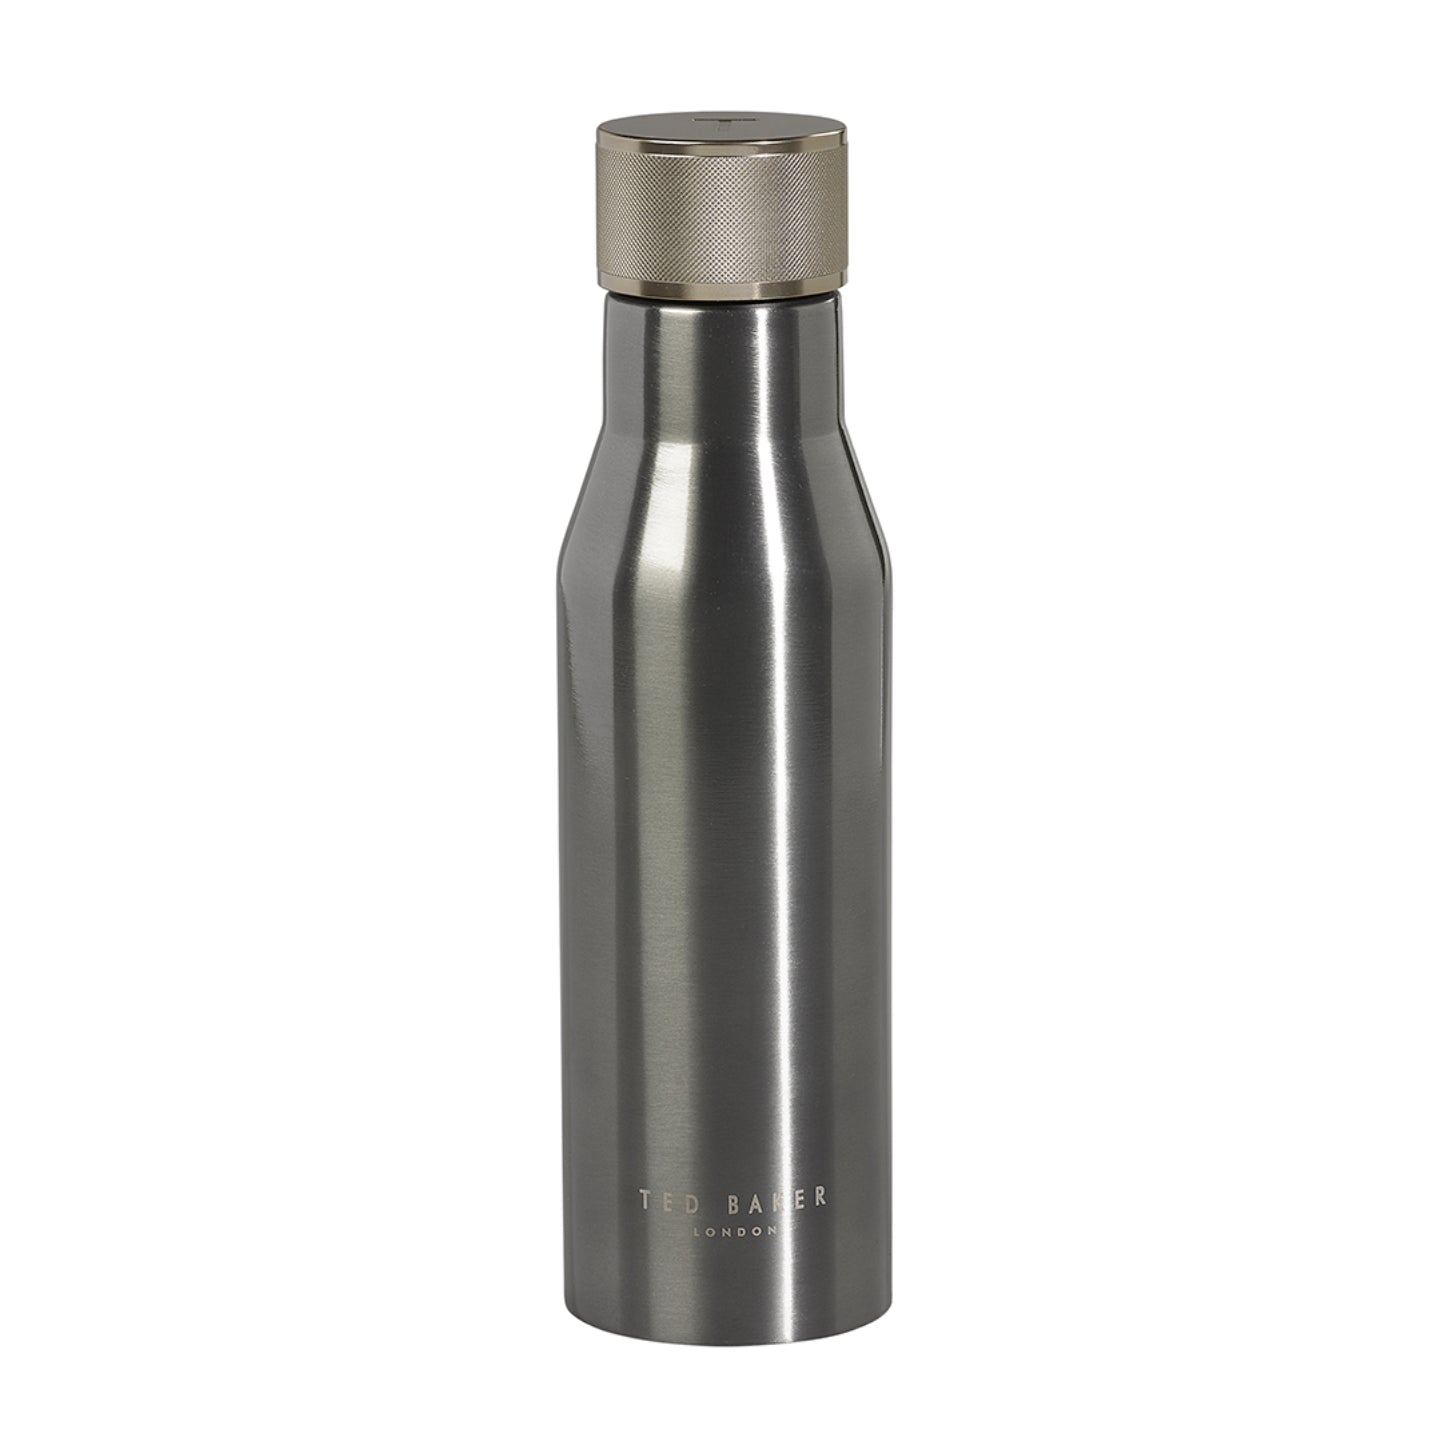 Ted Baker Water Bottle | Gunmetal